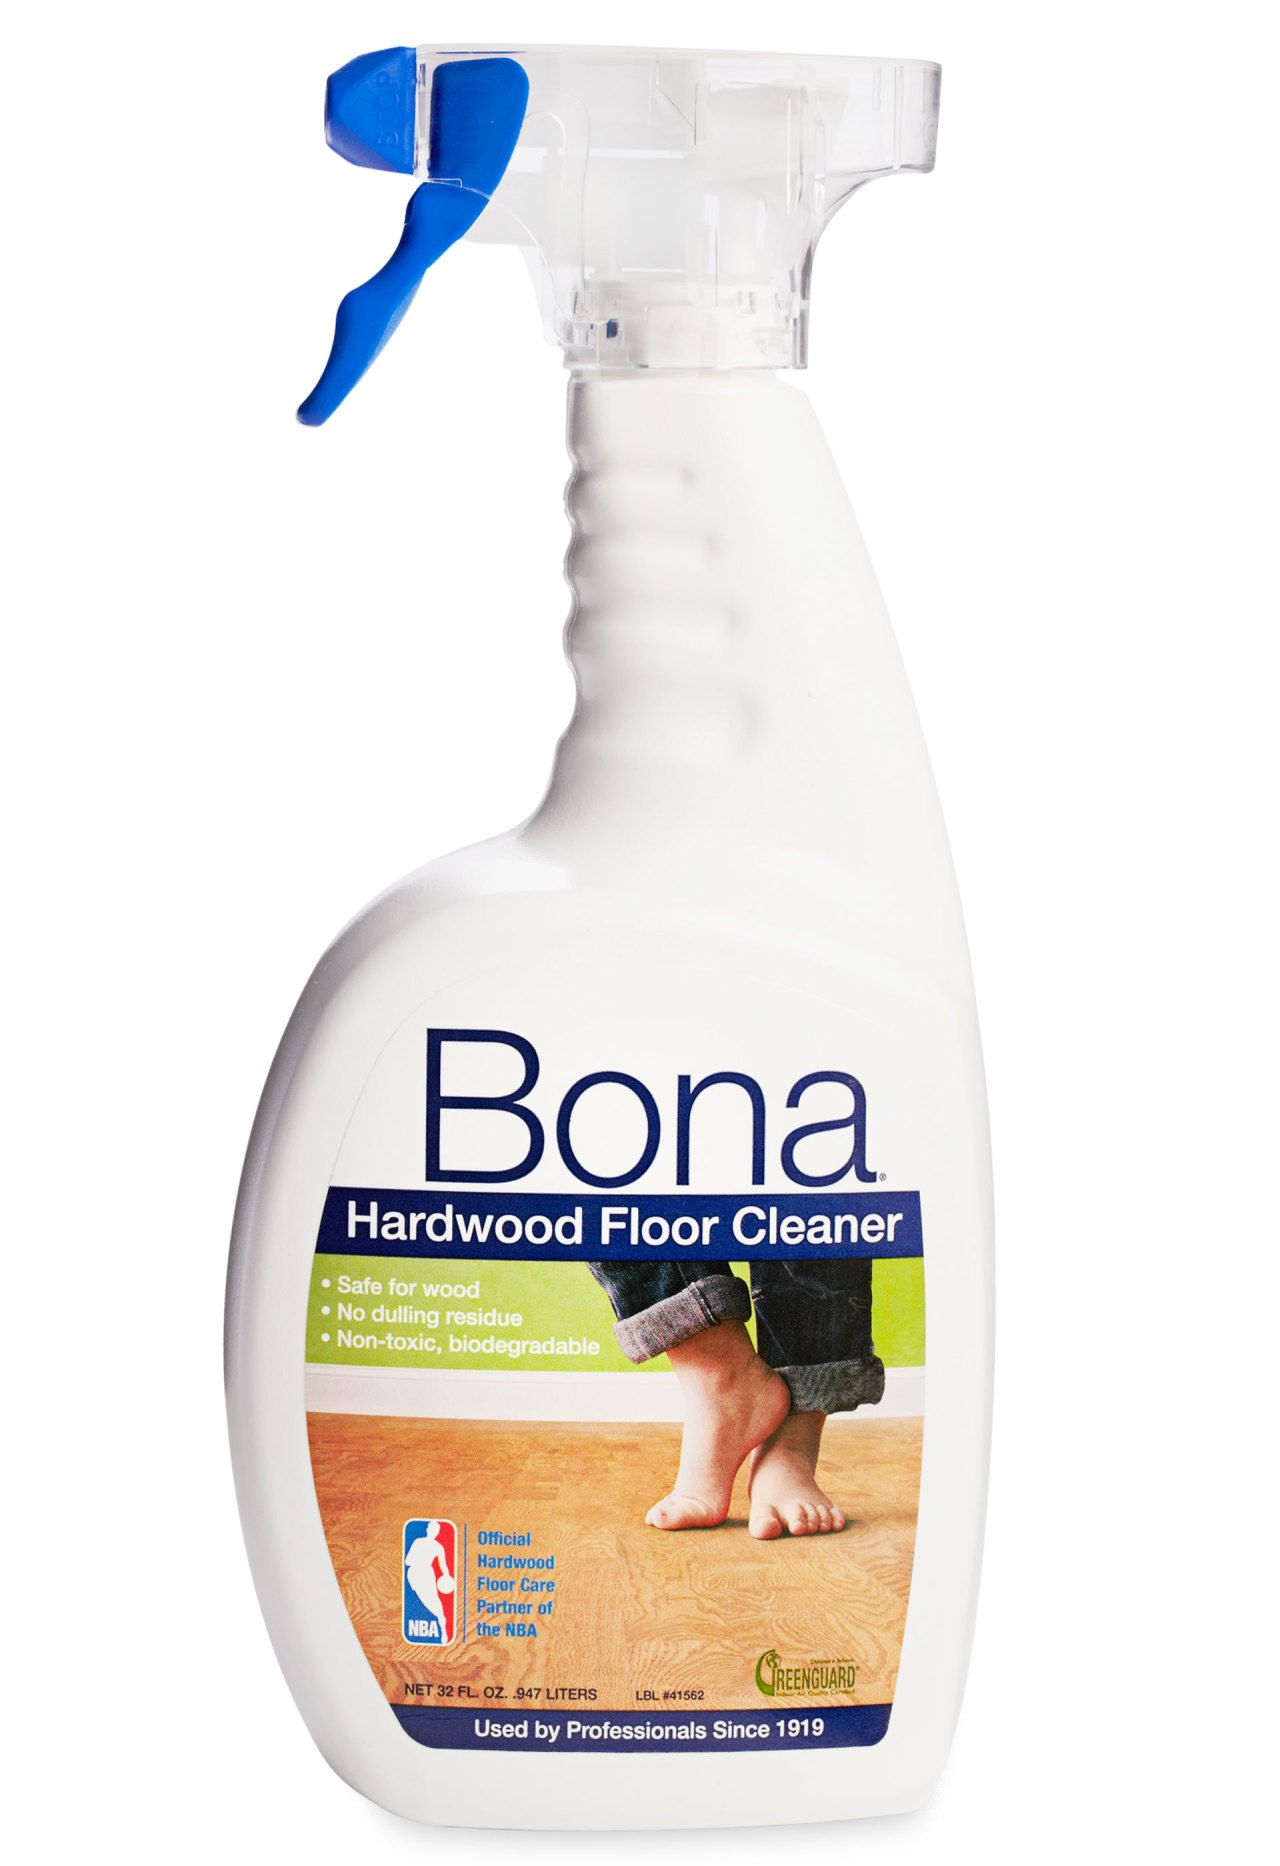 The Best Hardwood Cleaners to Make Your Floors Shine